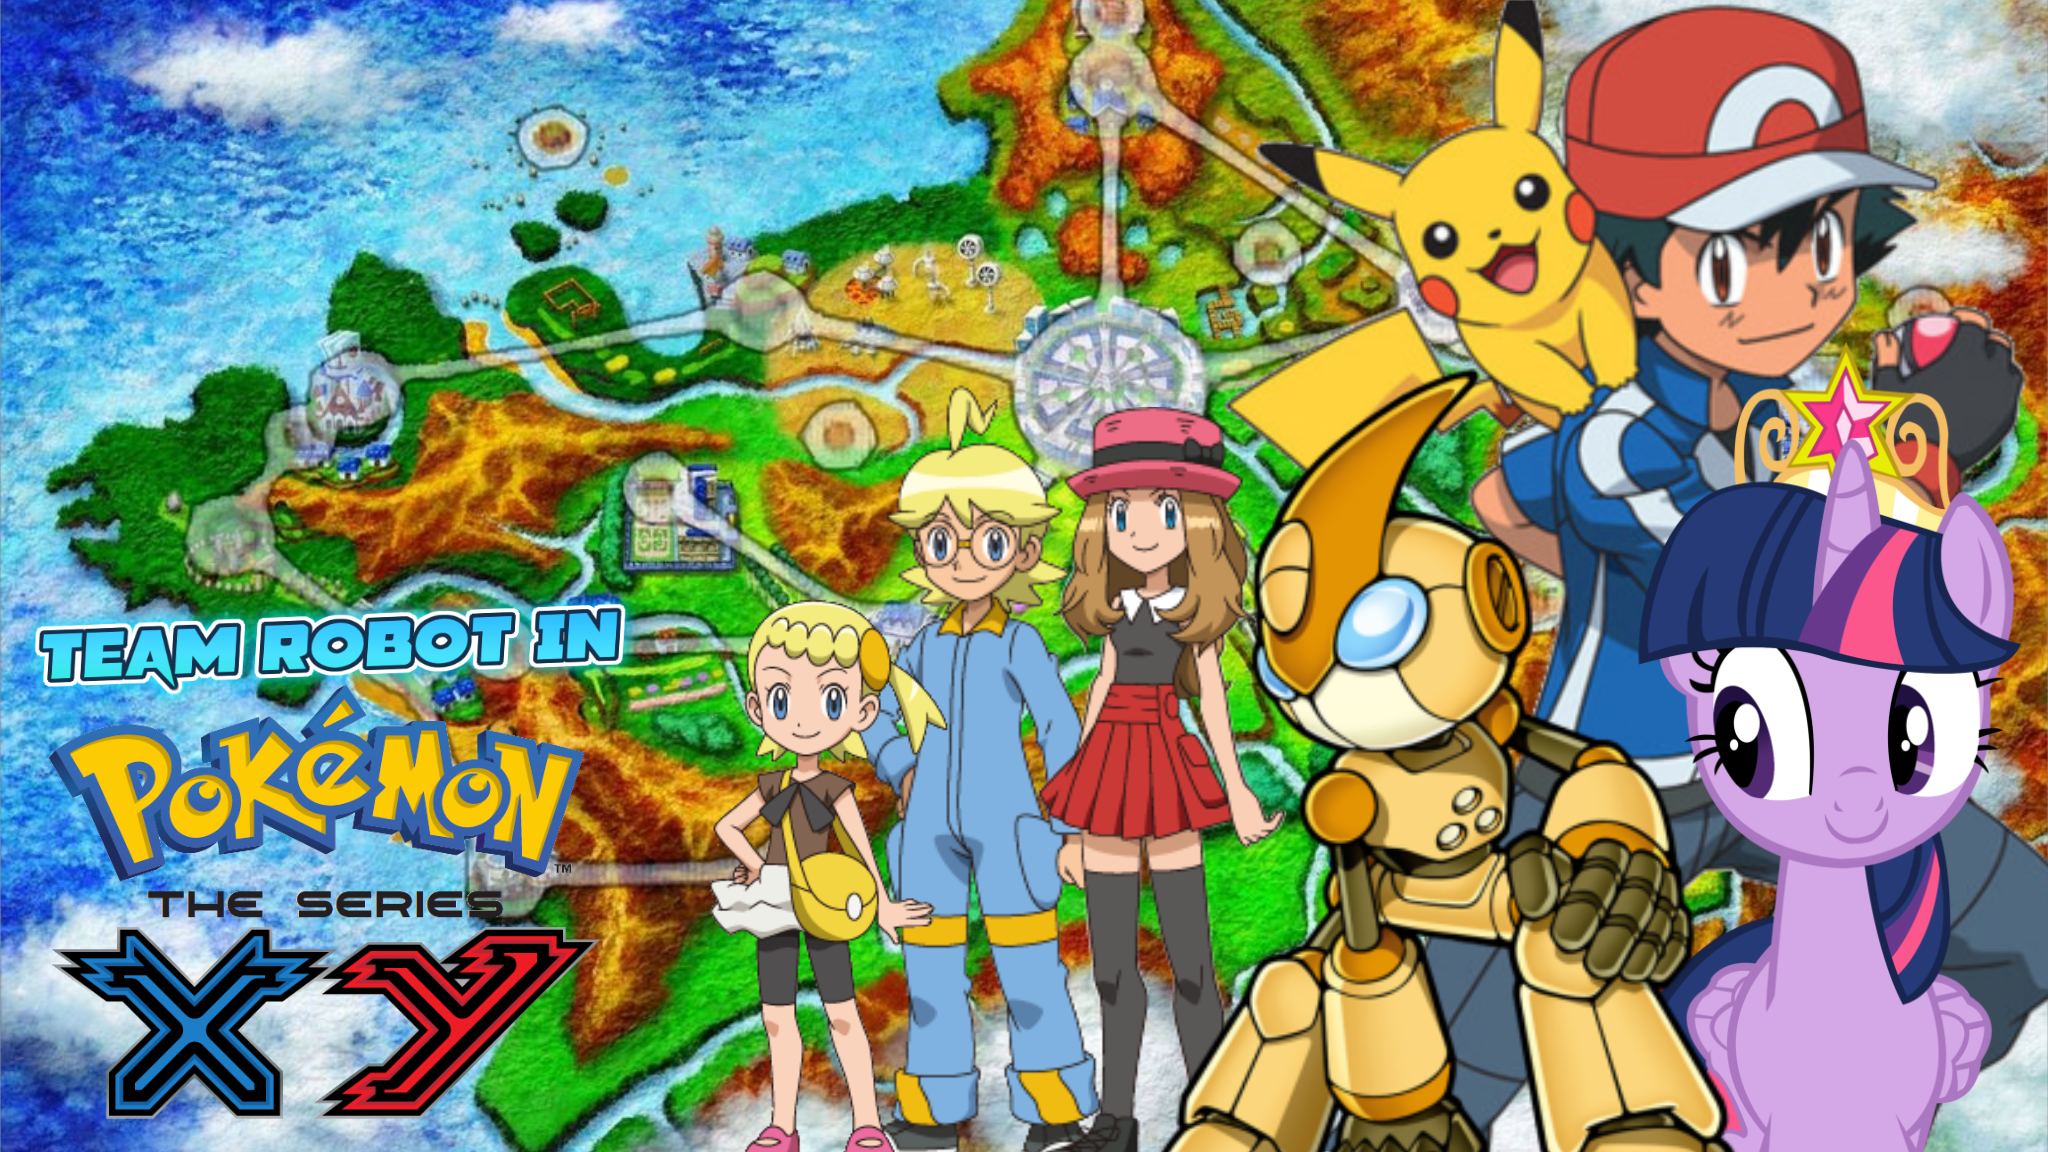 Thomas The Tank Engine Wall Stickers Team Robot In Pokemon Xy The Series Pooh S Adventures Wiki